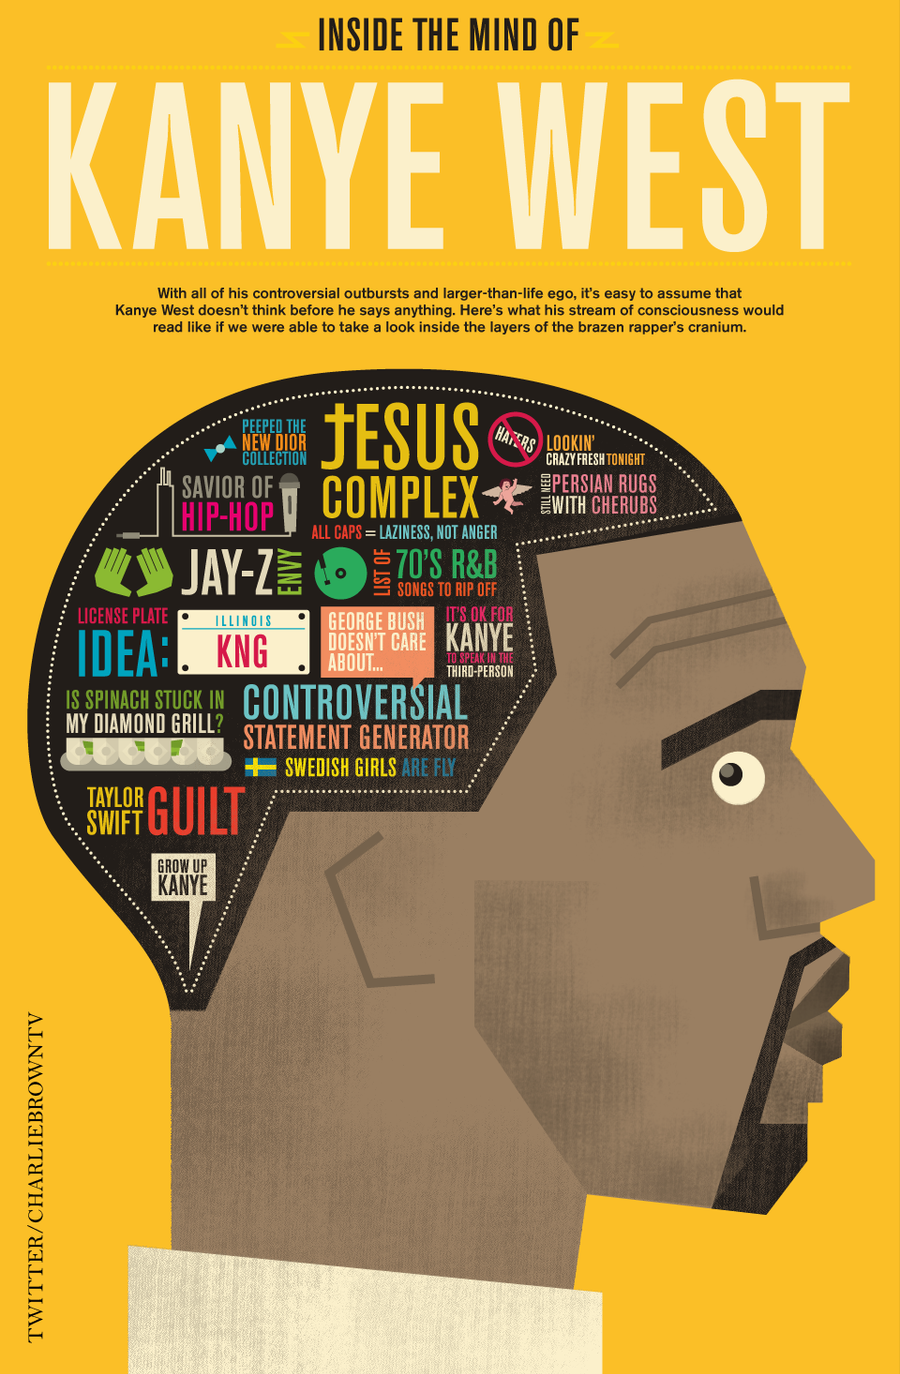 THE MIND OF KANYE WEST by CBrownDESIGNS